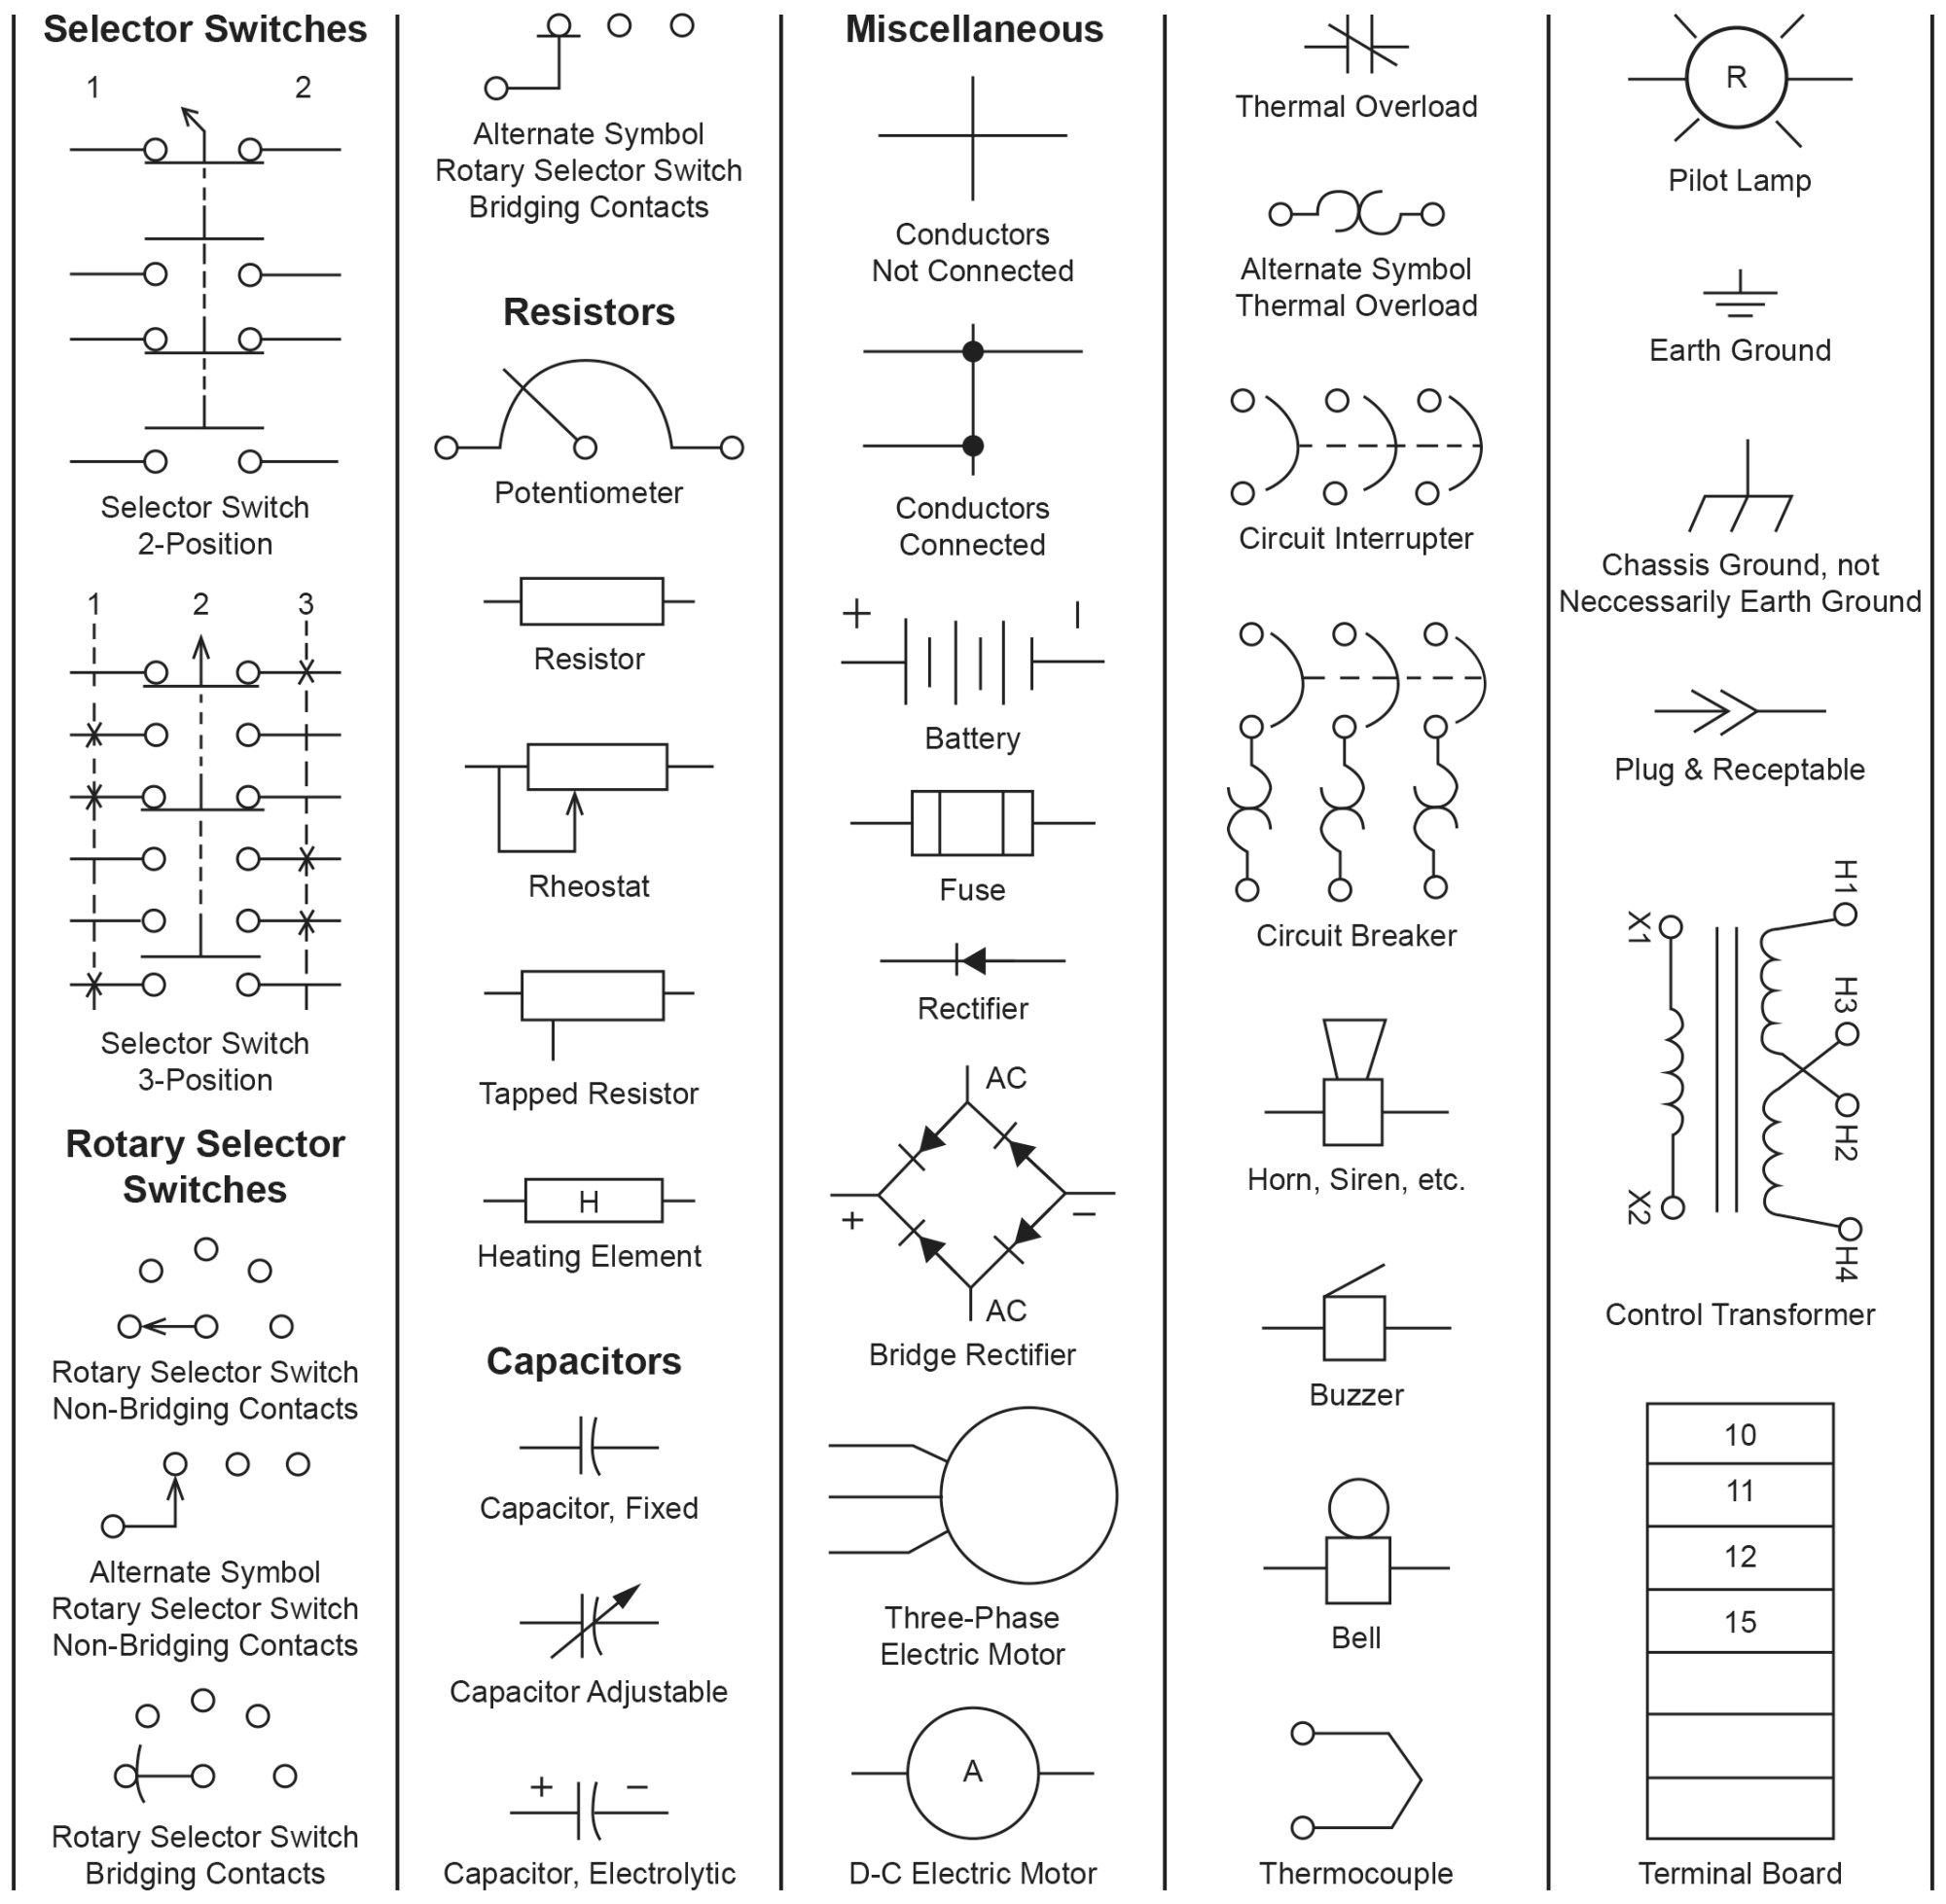 hight resolution of jic standard symbols for electrical ladder diagrams womack machine ladder logic symbols ladder diagram symbols